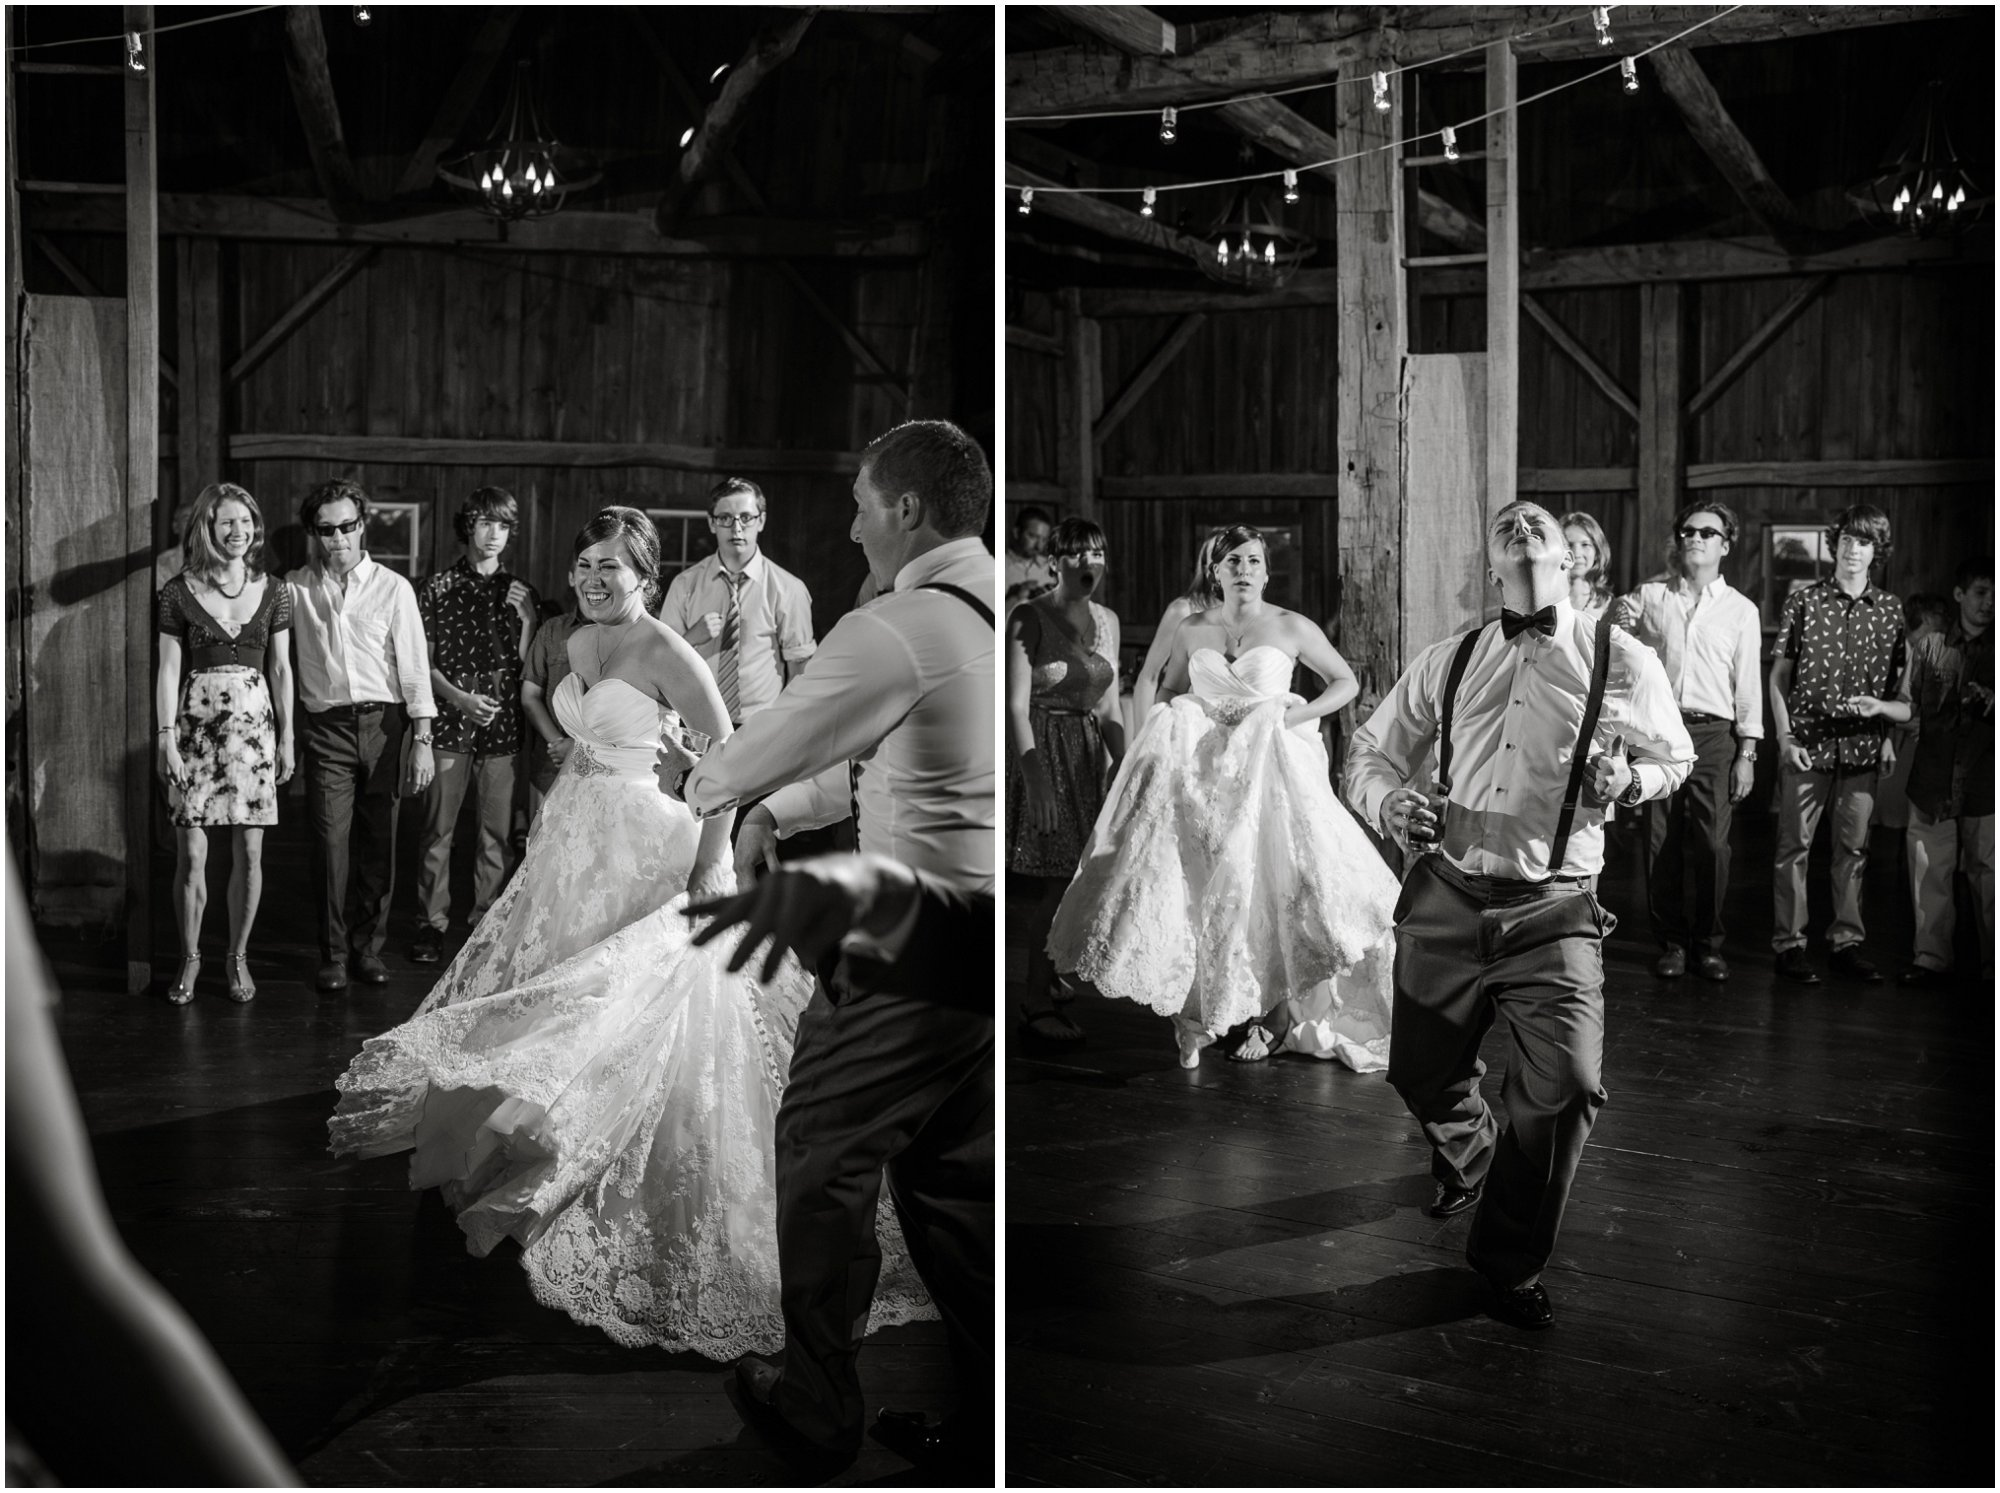 cornman-farms-wedding-michigan-barn-wedding_0993.jpg